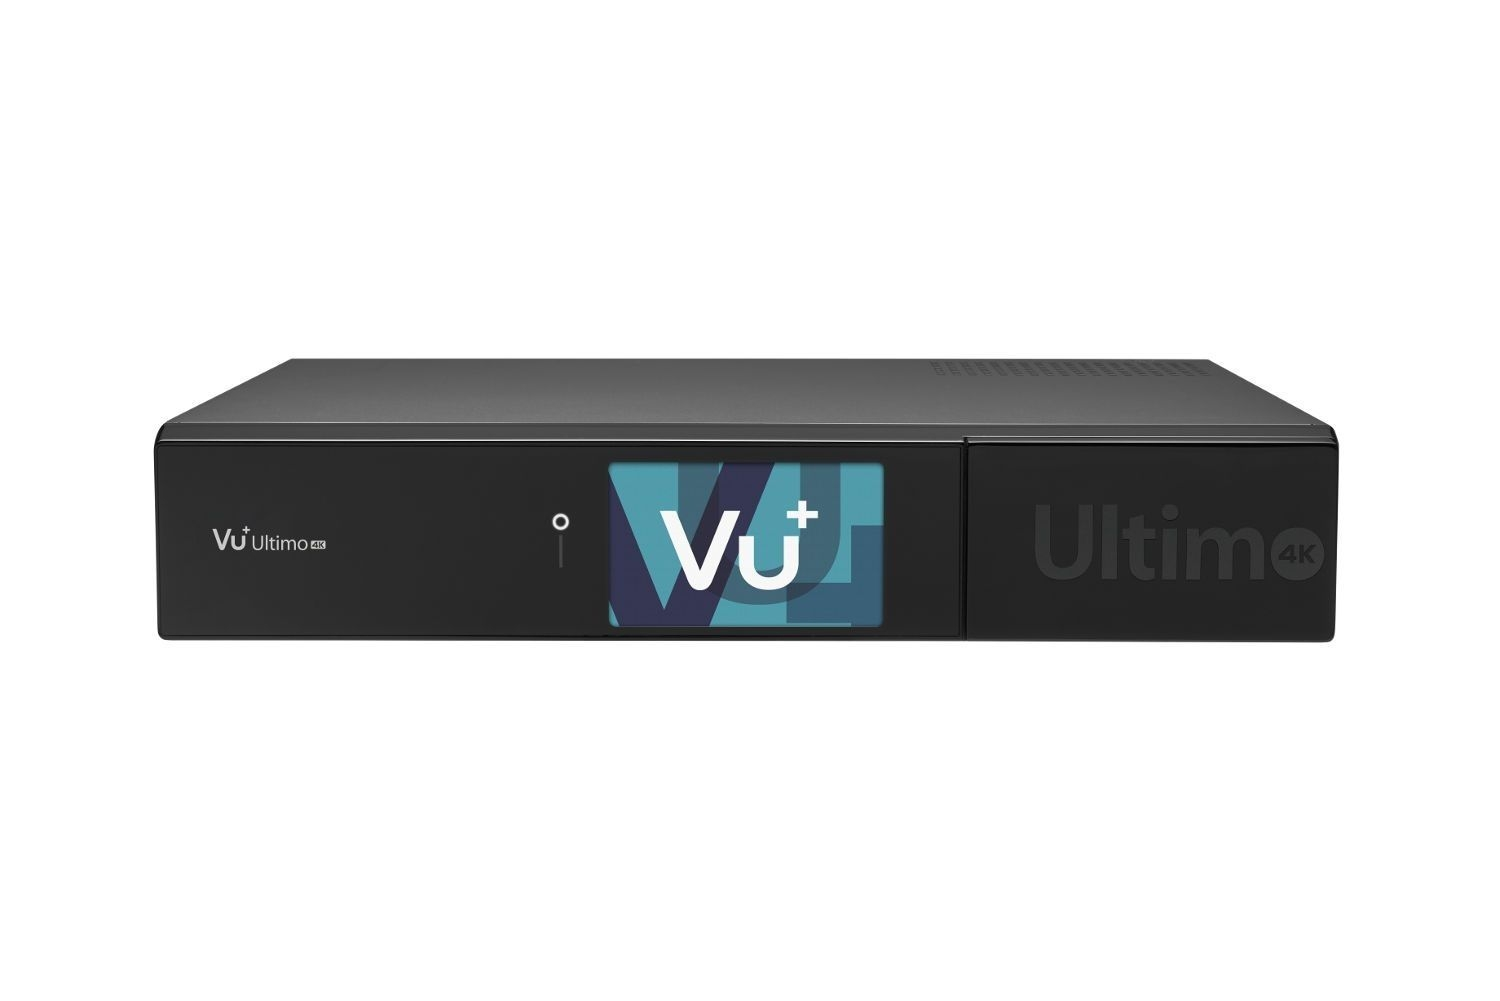 VU+ Ultimo 4K 2x DVB-C FBC / 1x DVB-S2 Dual Tuner 500 GB HDD Linux Receiver UHD 2160p